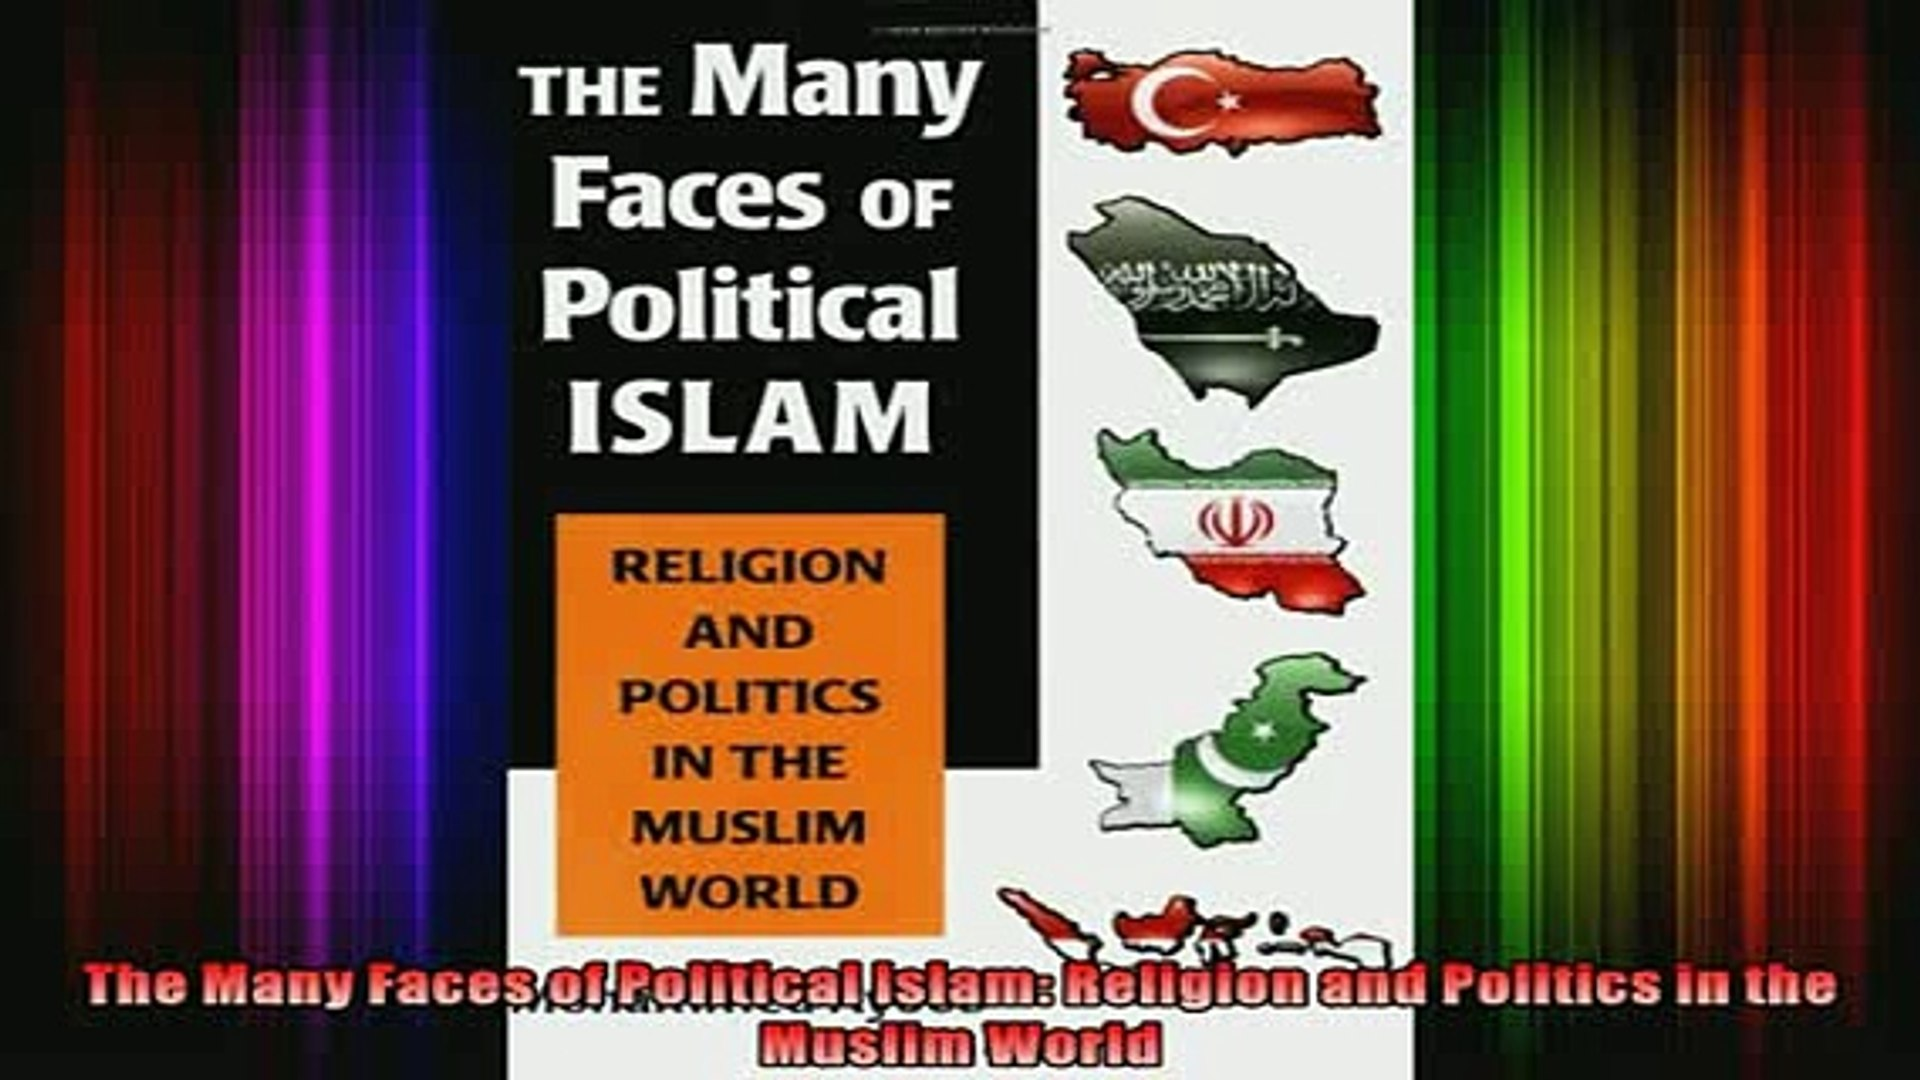 Read  The Many Faces of Political Islam Religion and Politics in the Muslim World  Full EBook